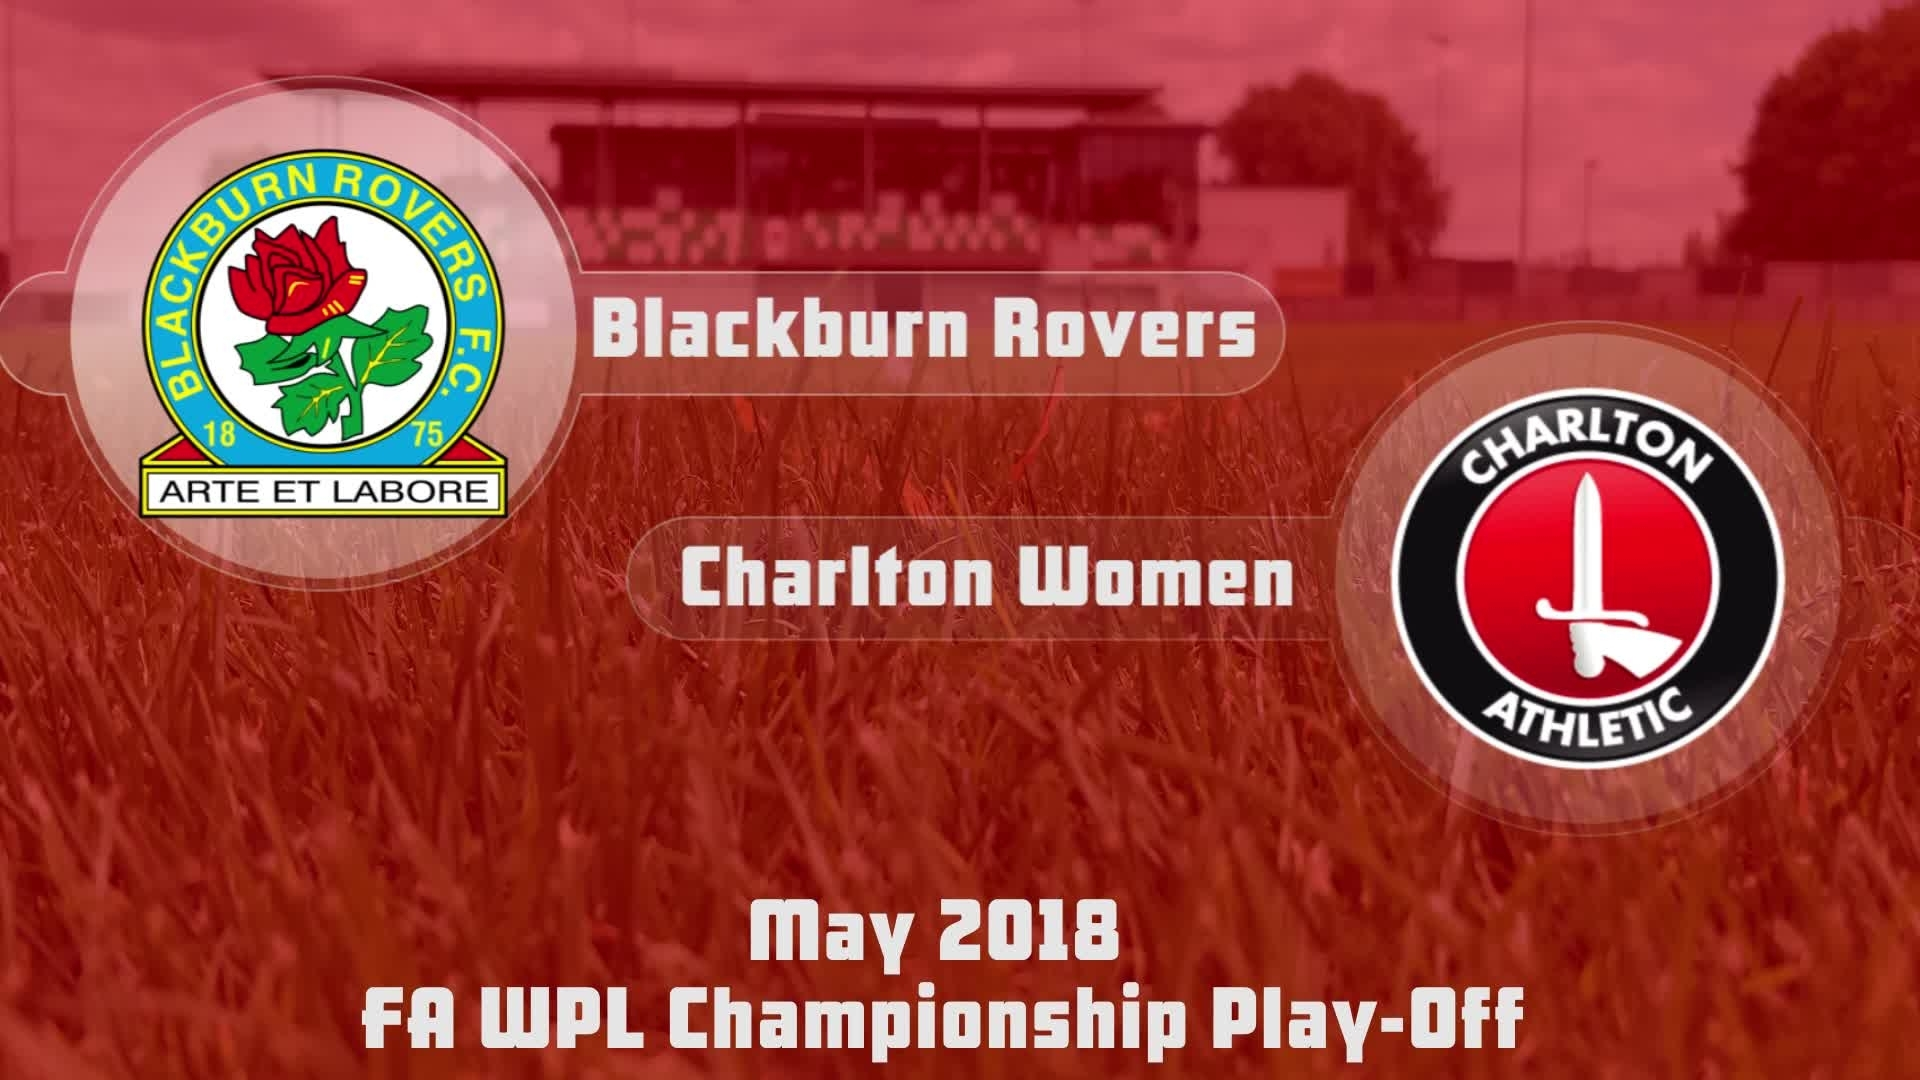 WOMEN'S HIGHLIGHTS | Blackburn 1 Charlton 2 (FA WPL Play-off, May 2018)